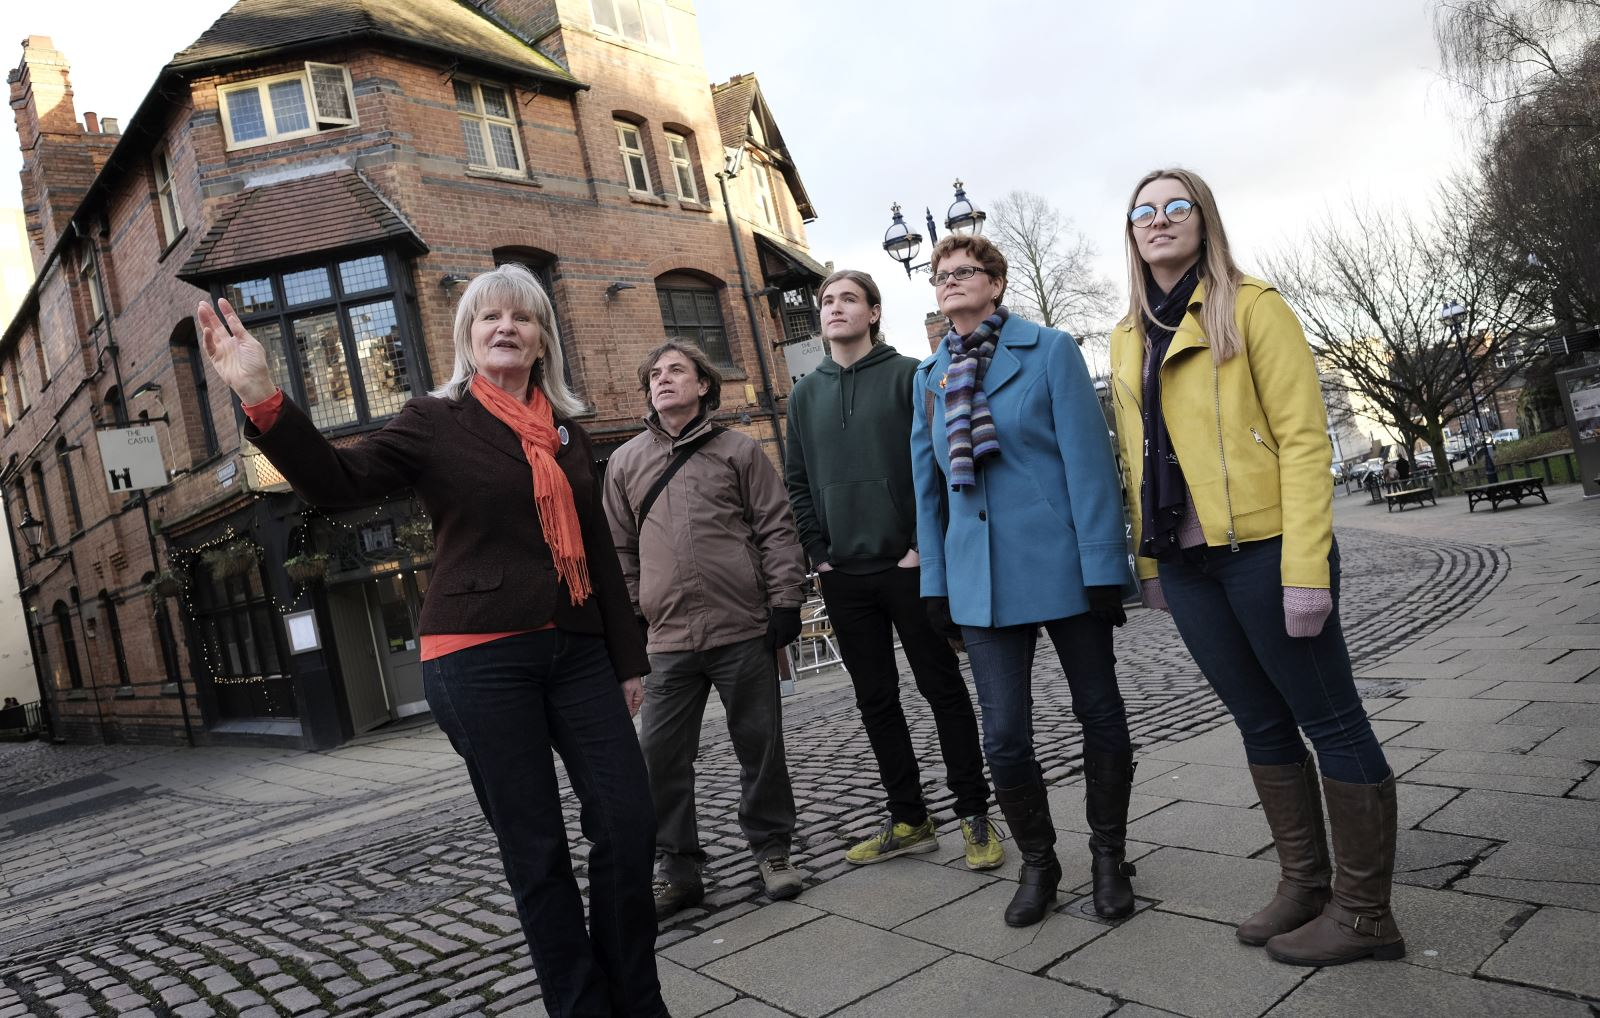 Gold Star Guides Visit Nottinghamshire